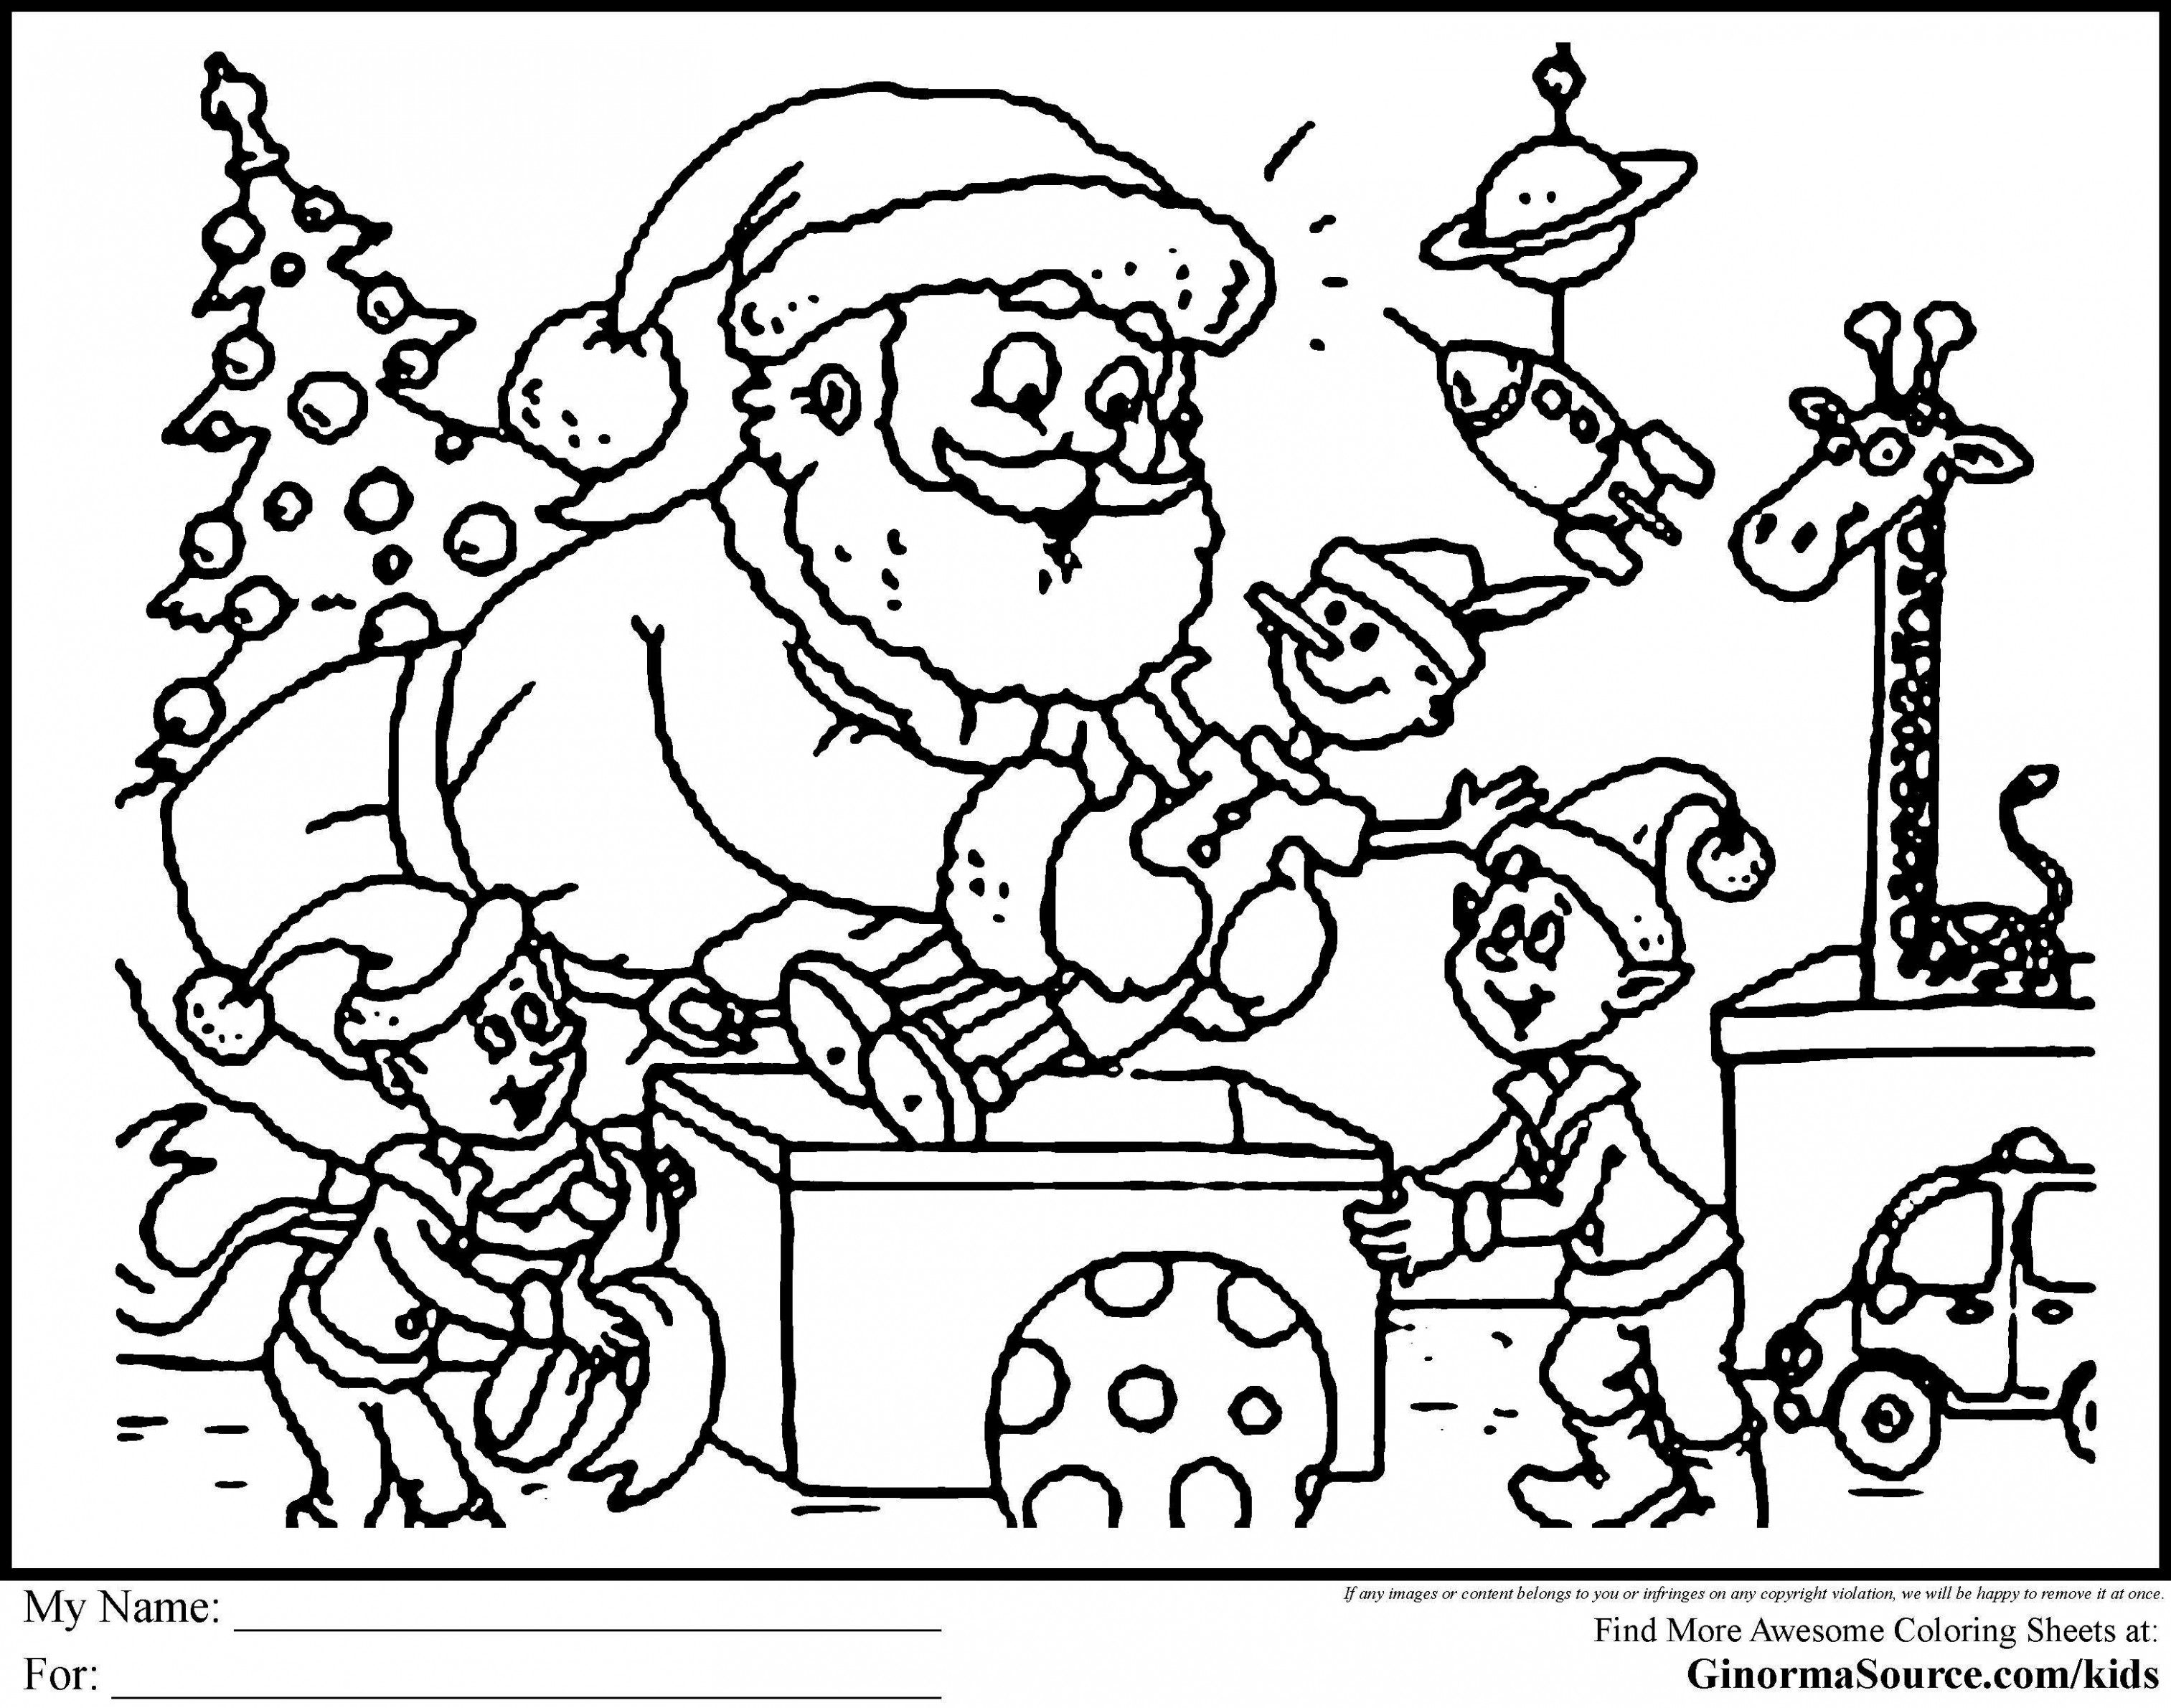 Merry Christmas Image Best Of Christmas Coloring Pages for Kids ..